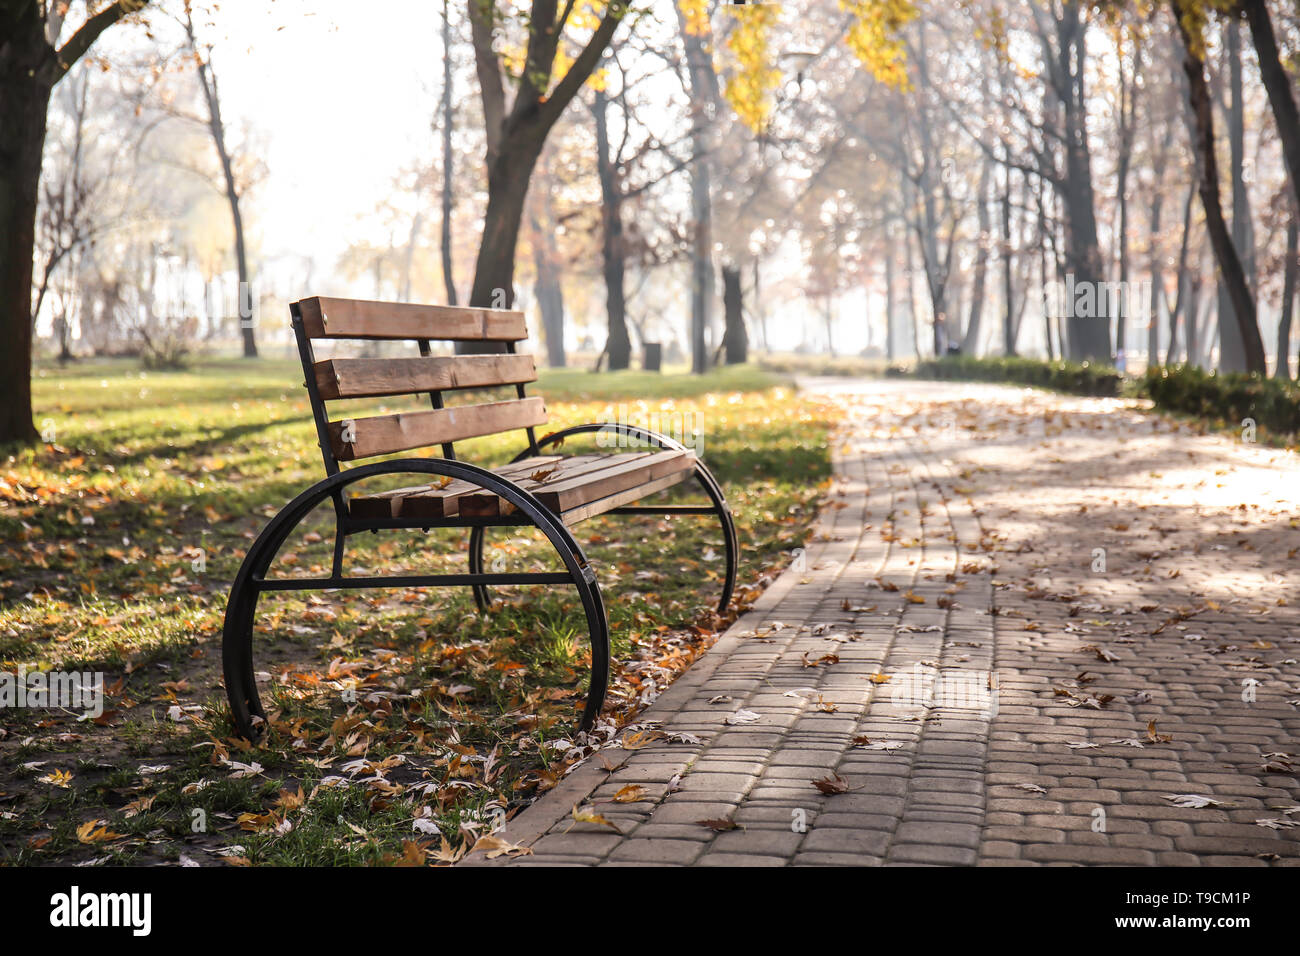 Wooden Bench In Autumn Park Stock Photo 246756210 Alamy